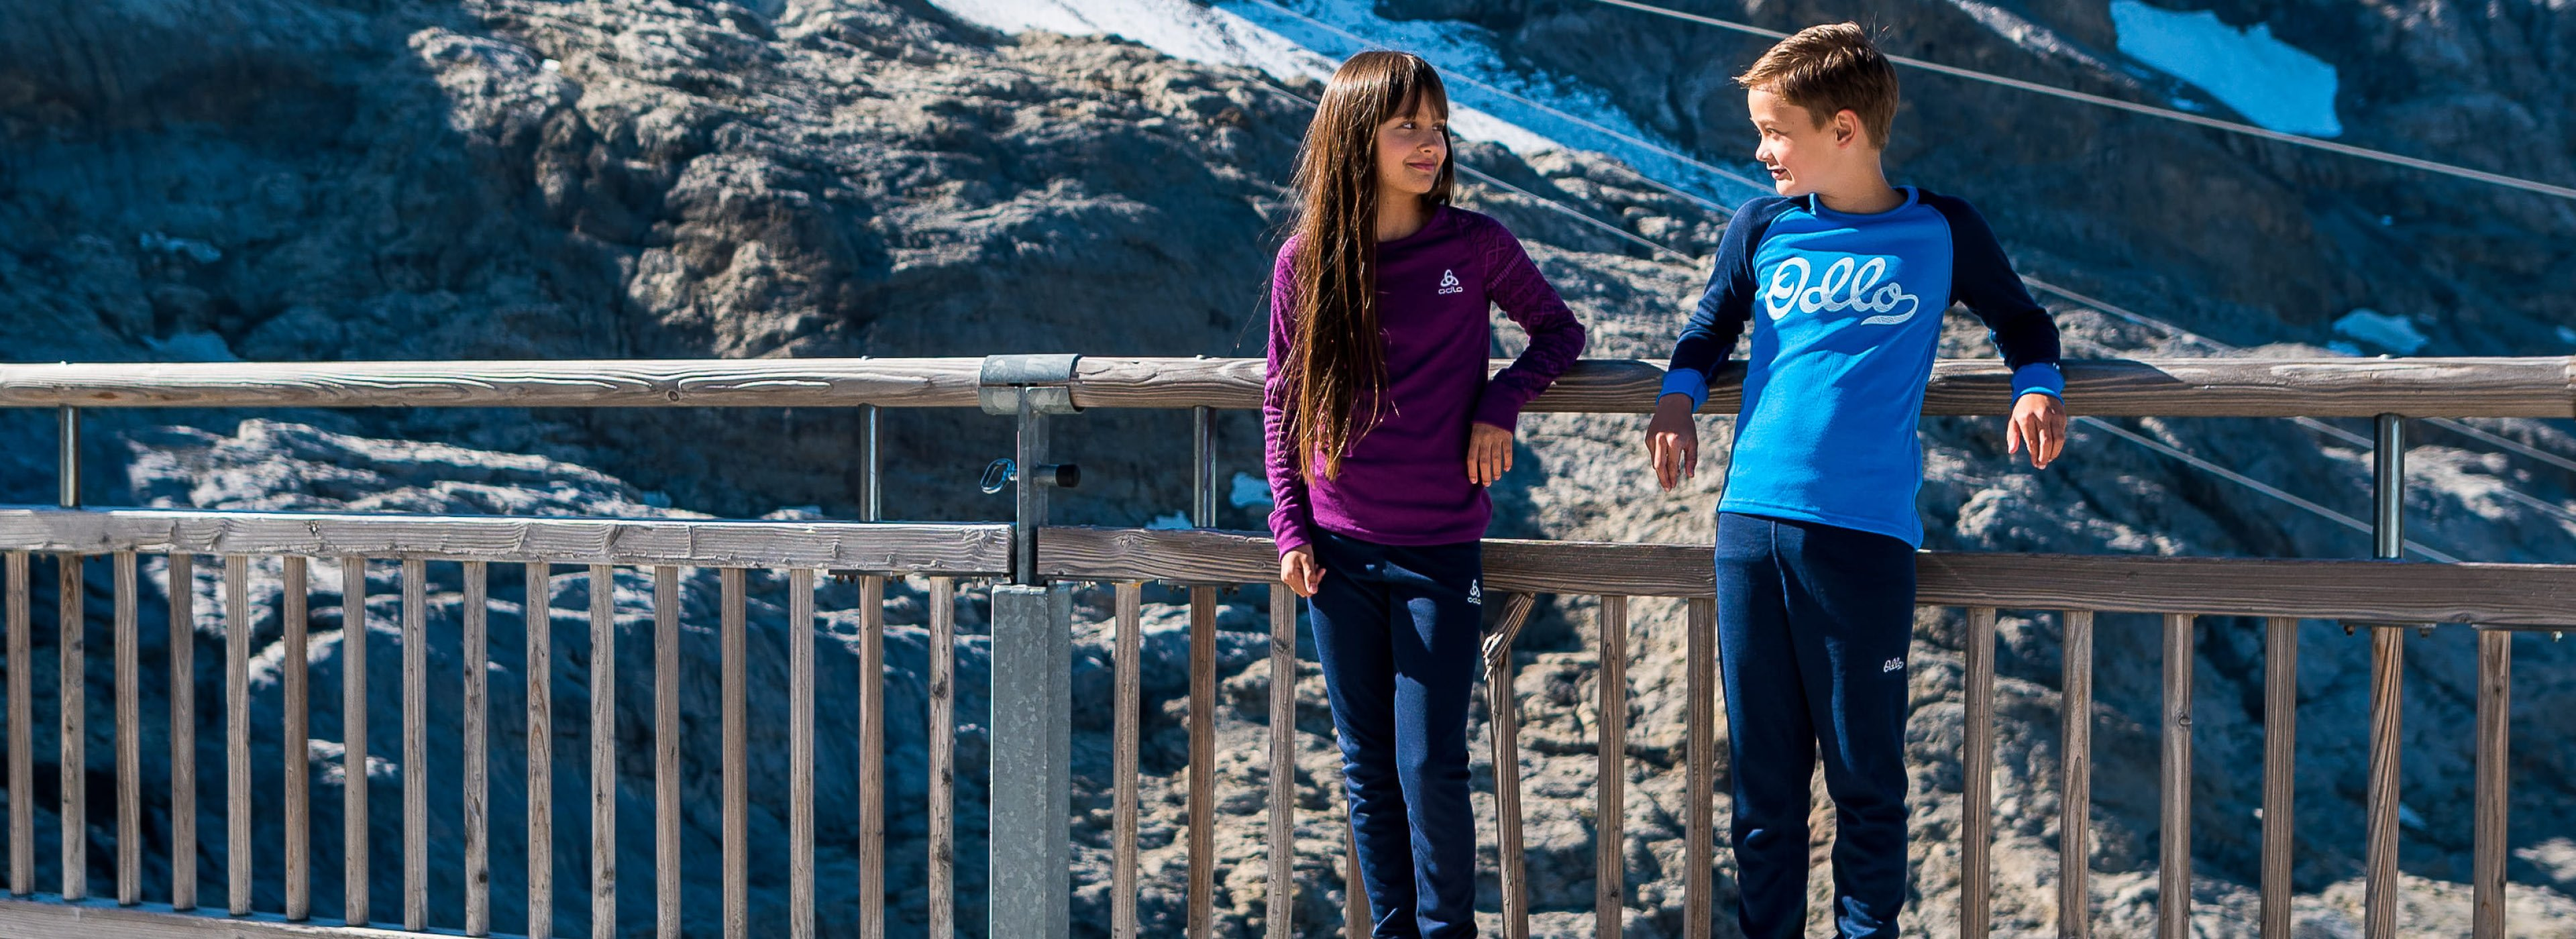 Hiking with kids: a sanity guide